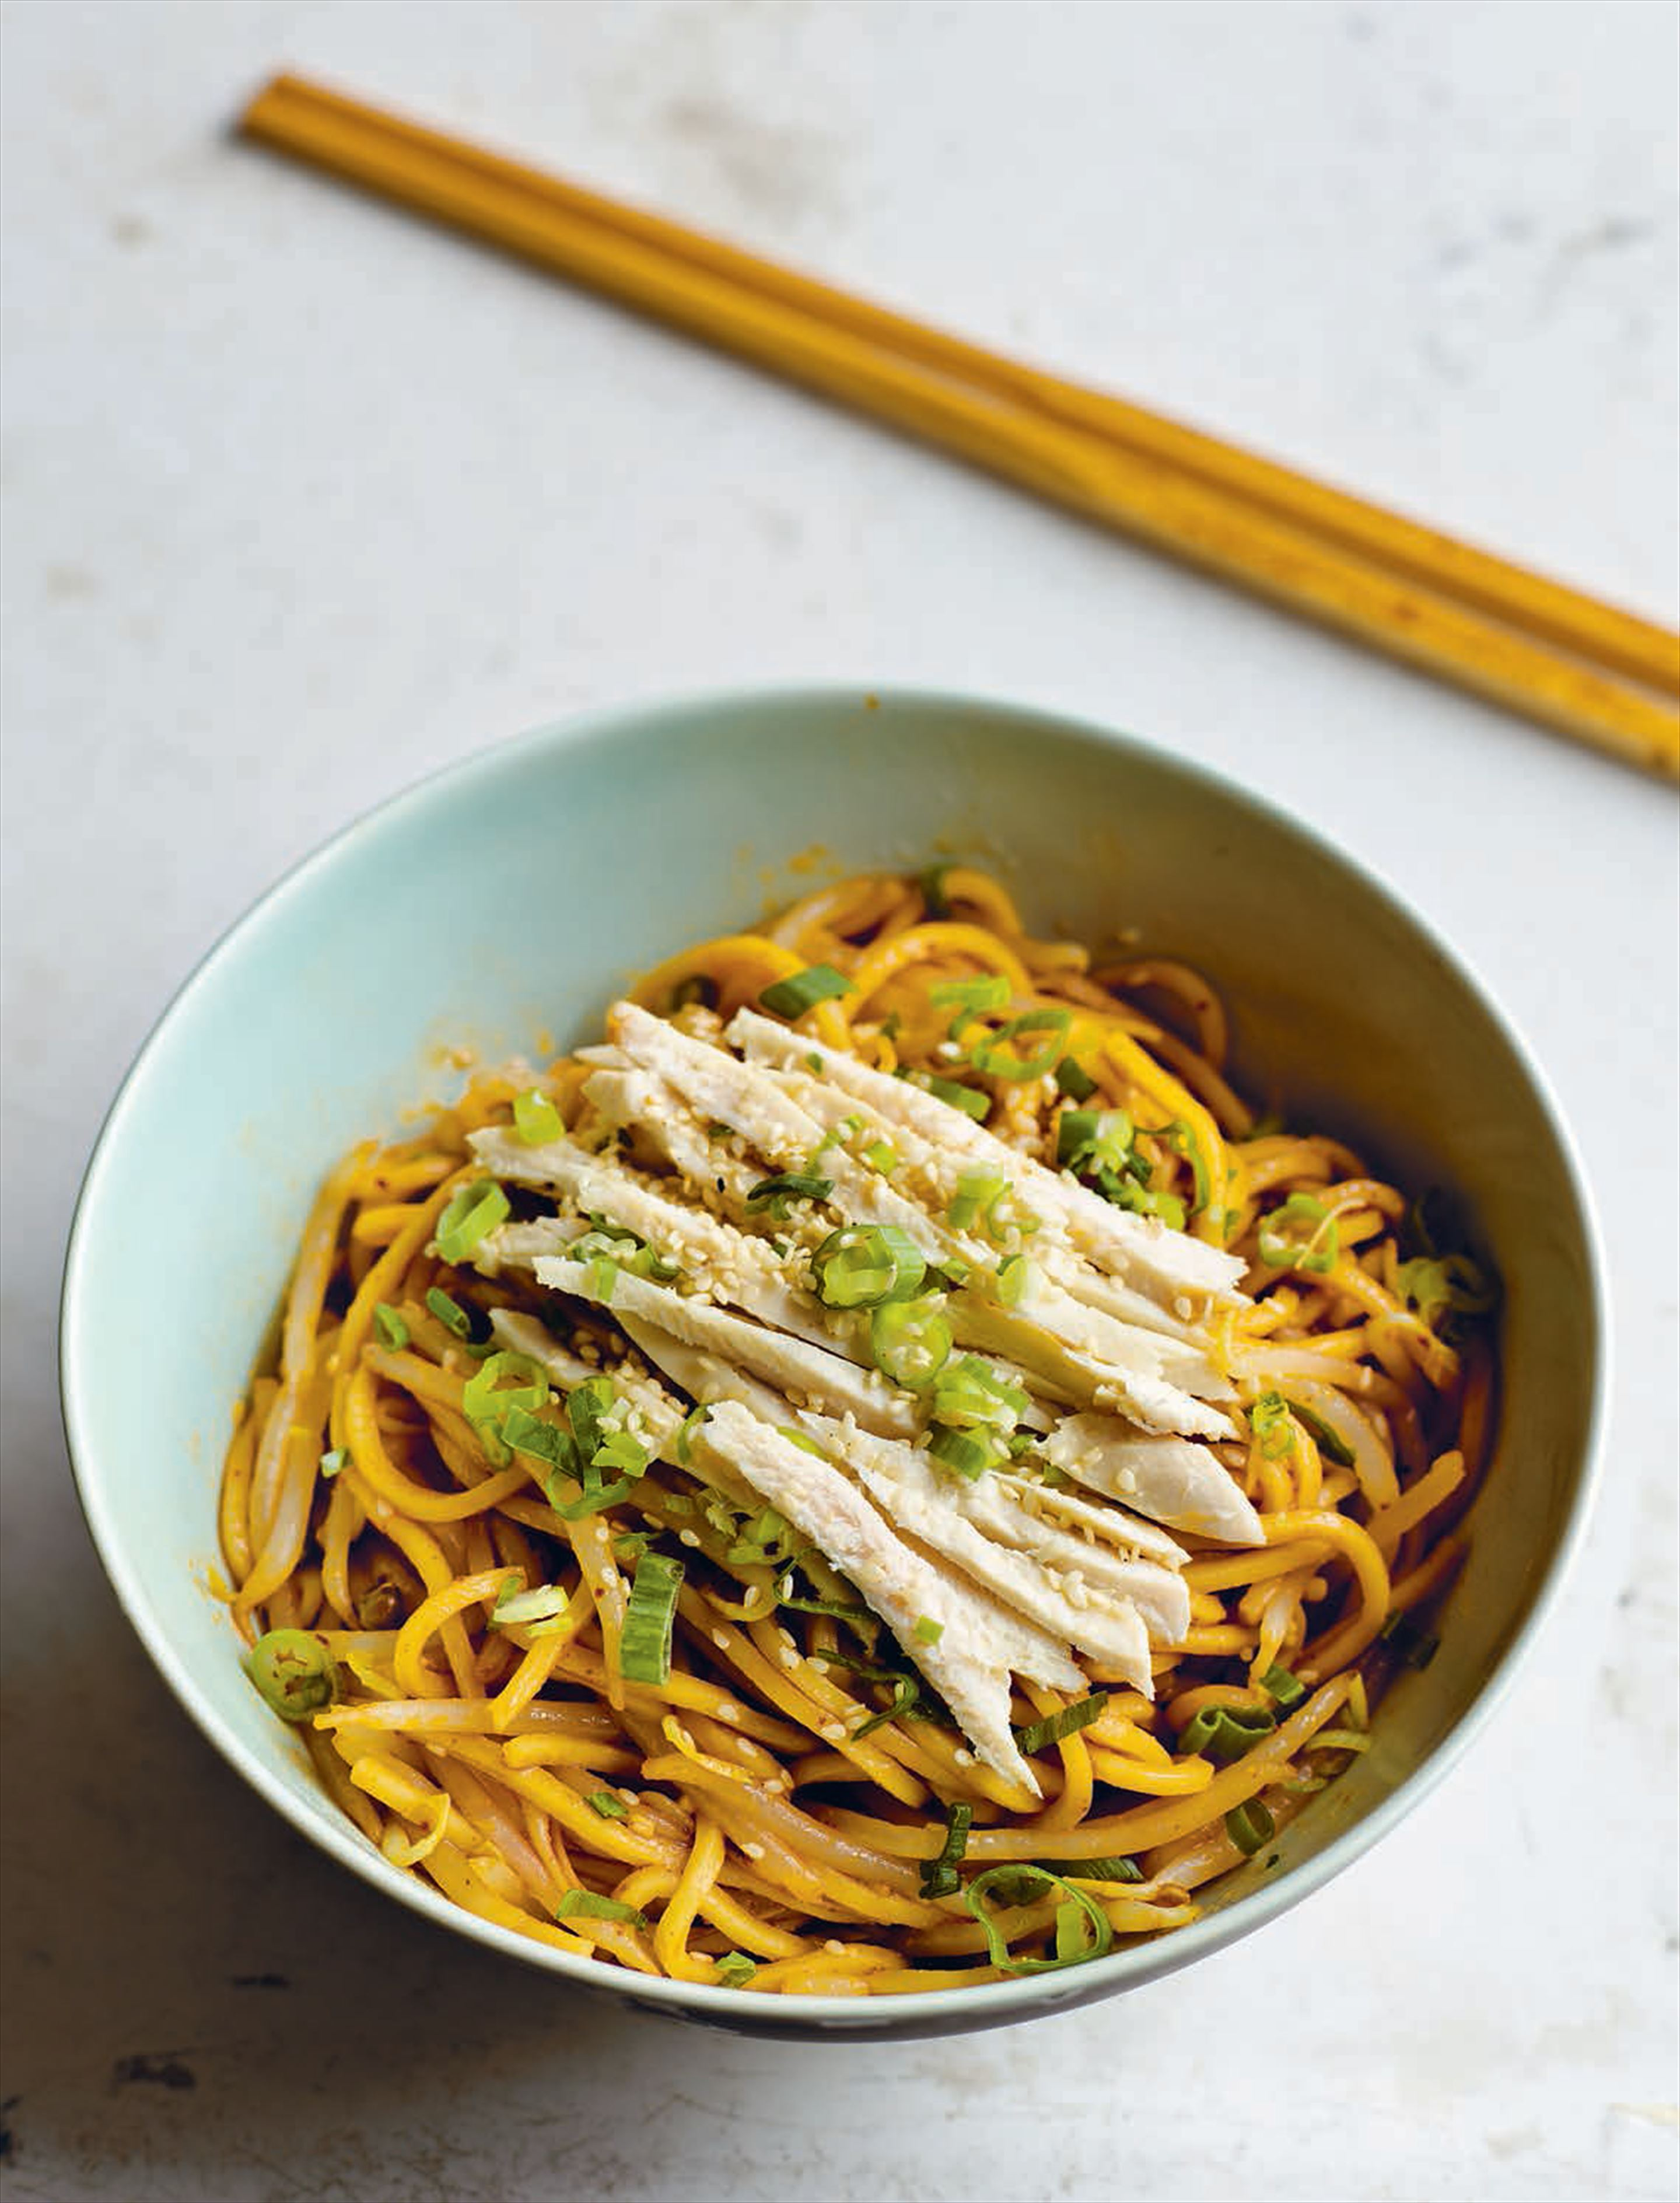 Mrs Yu's sweet and spicy cold noodles